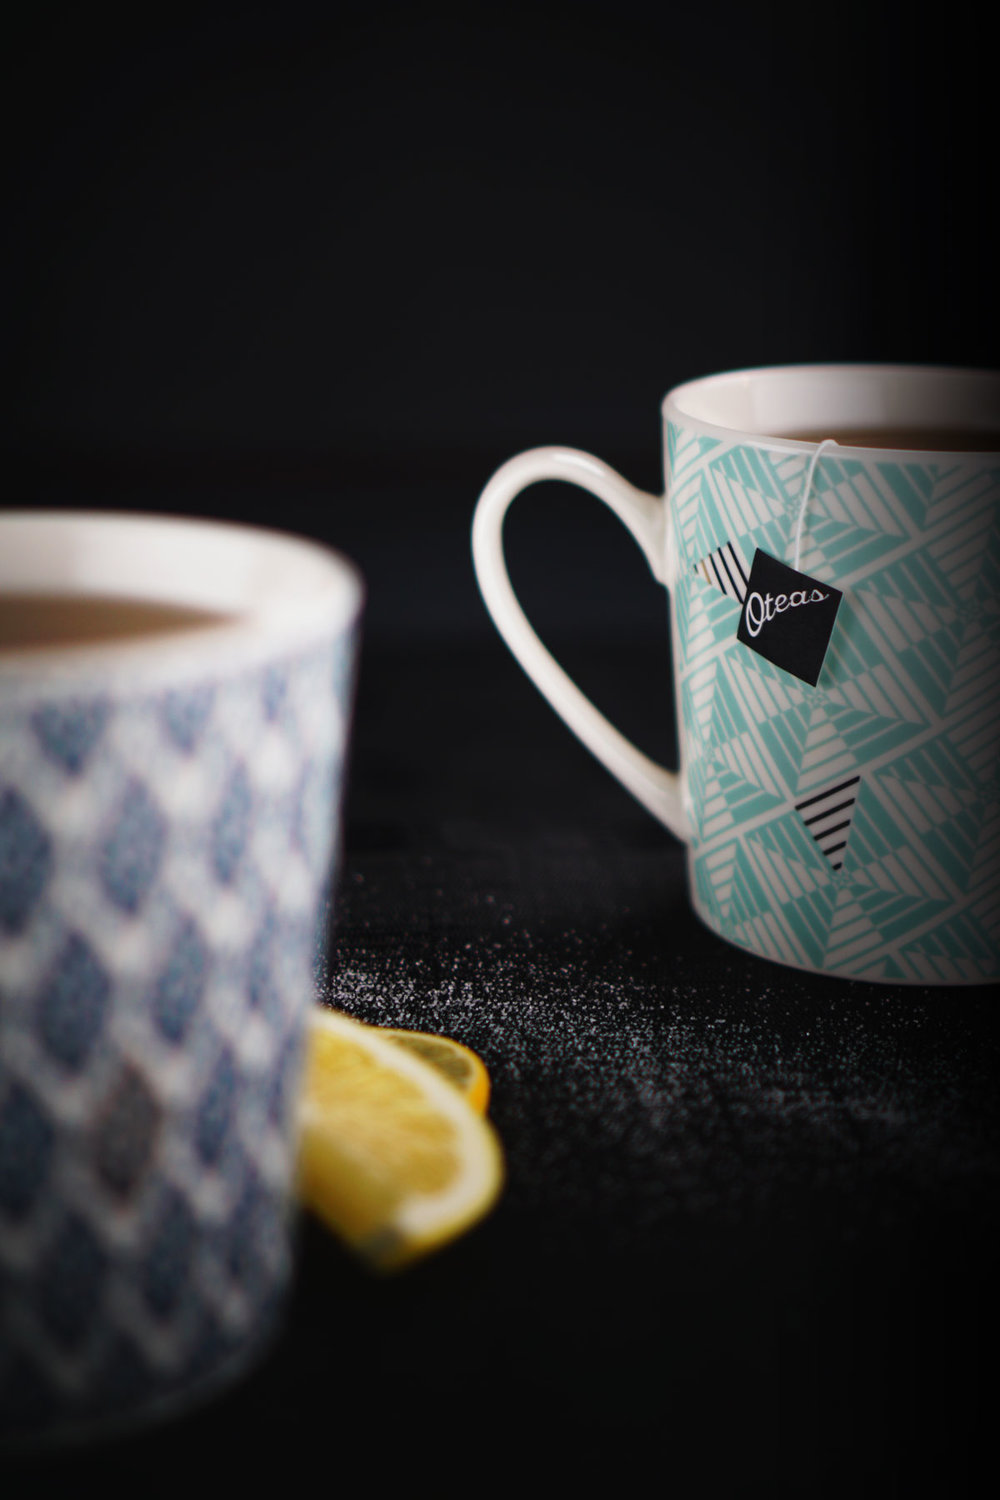 Classic indulgence - It's not just us Brits who love a classic brew. Discover new tones and playful flavours in established teas like Darjerrling, Earl Grey and Bergamot, and infuse your day with time-honoured traditions.